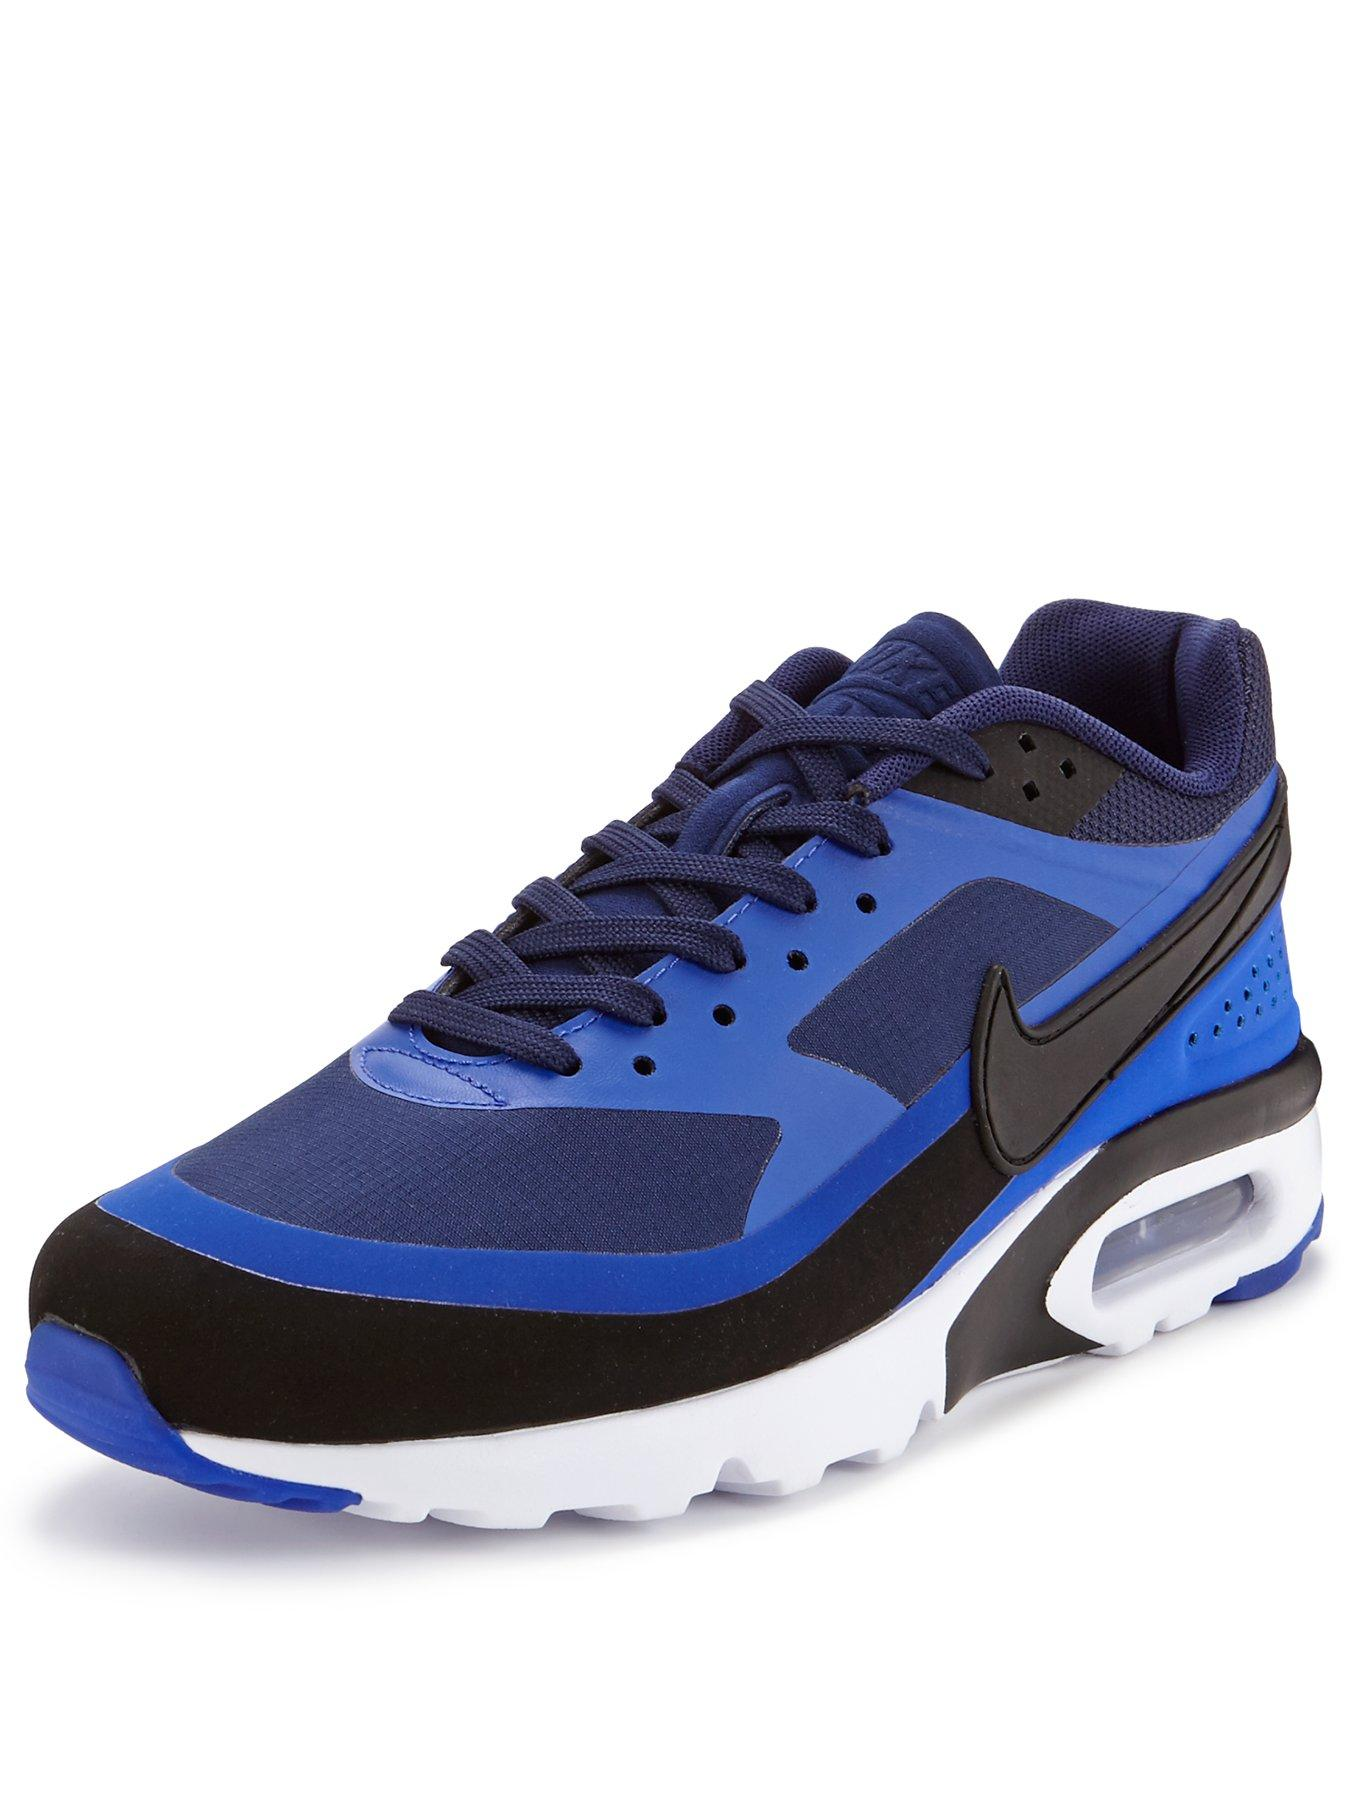 site réputé 11c8b 2c2f6 nike air max commander shoes